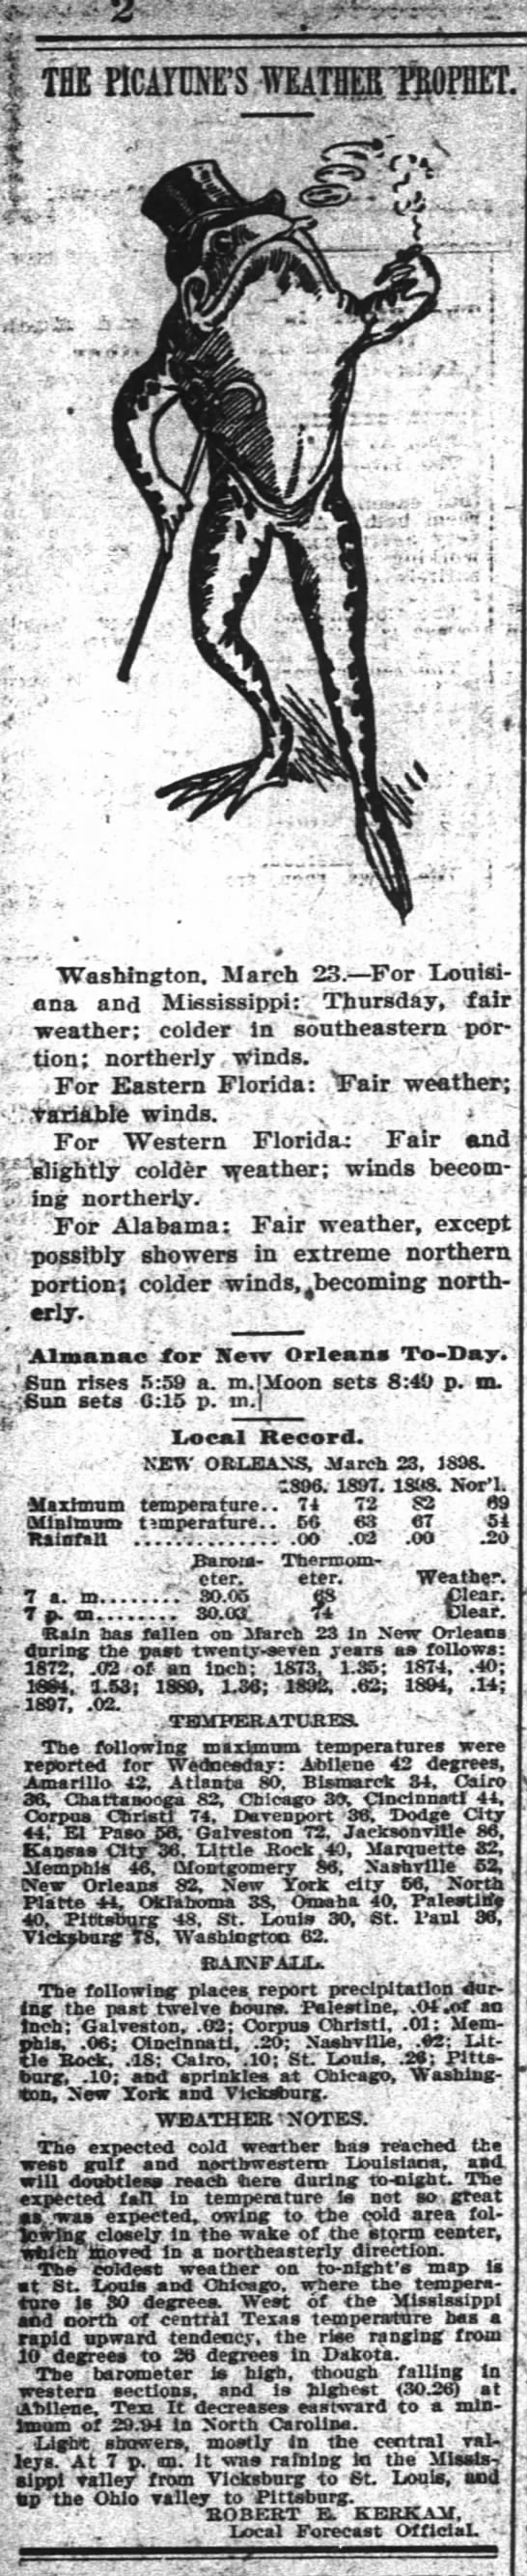 1898 The Time-Picayune : Weather Prophet -